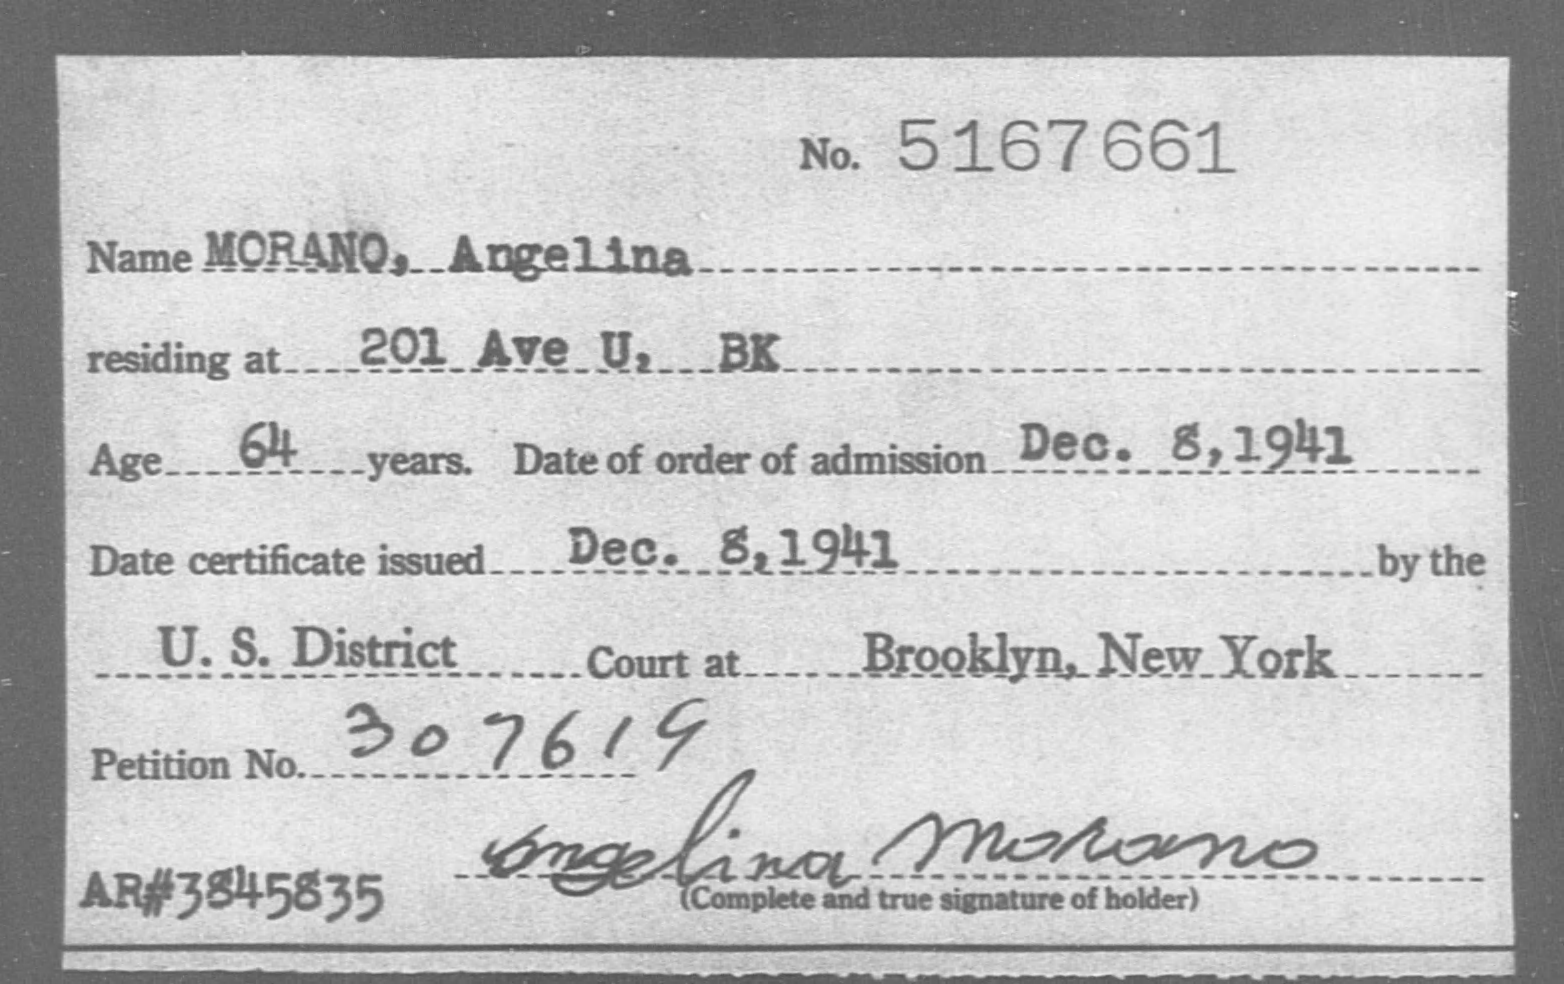 MORANO, Angelina - Born: [BLANK], Naturalized: 1941